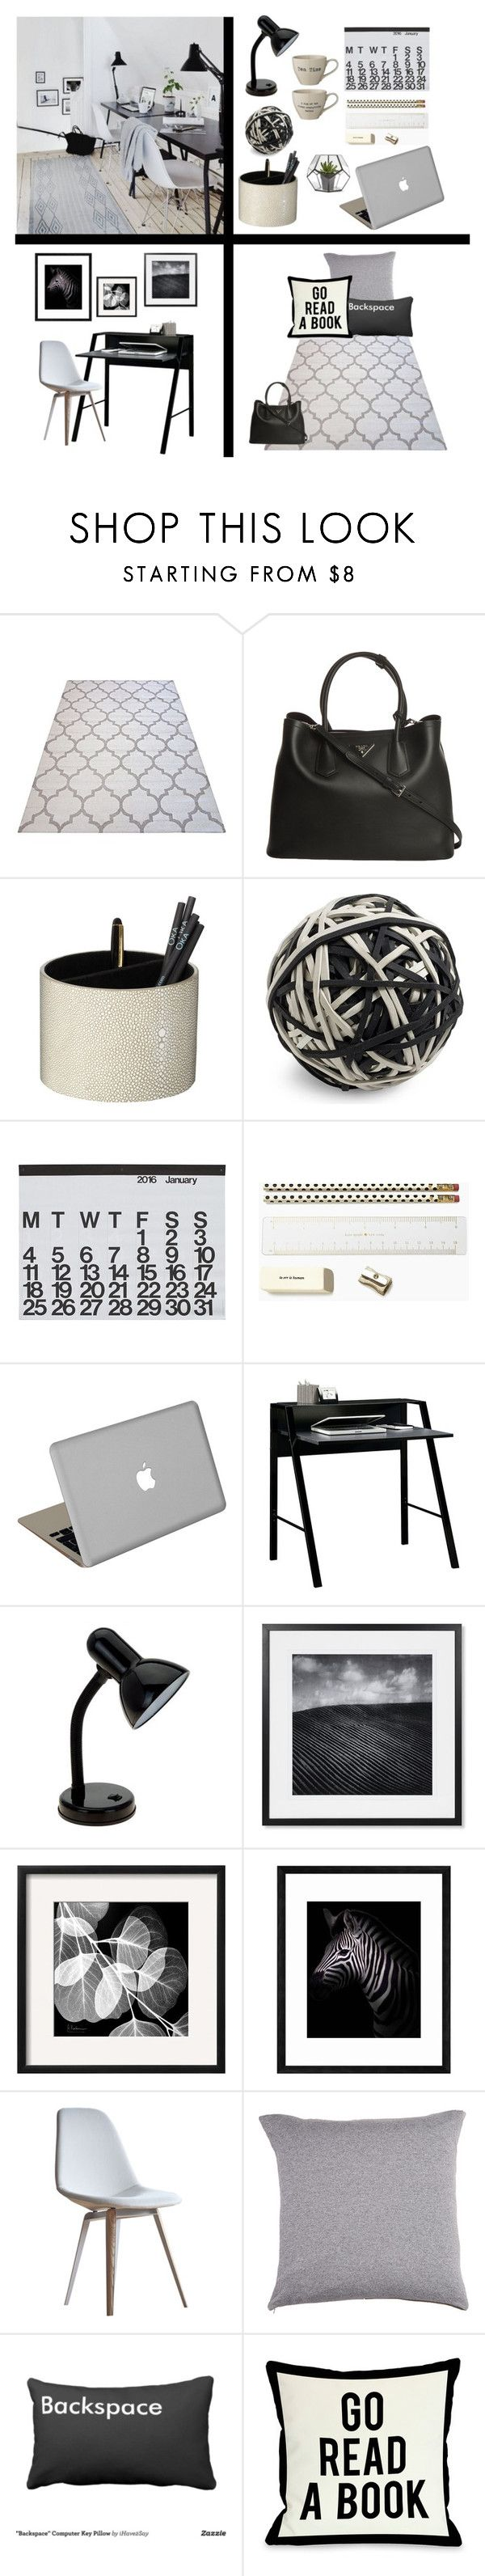 Home decor collage from january 2017 featuring currey company -  Work Home By Janadeco On Polyvore Featuring Interior Interiors Interior Design